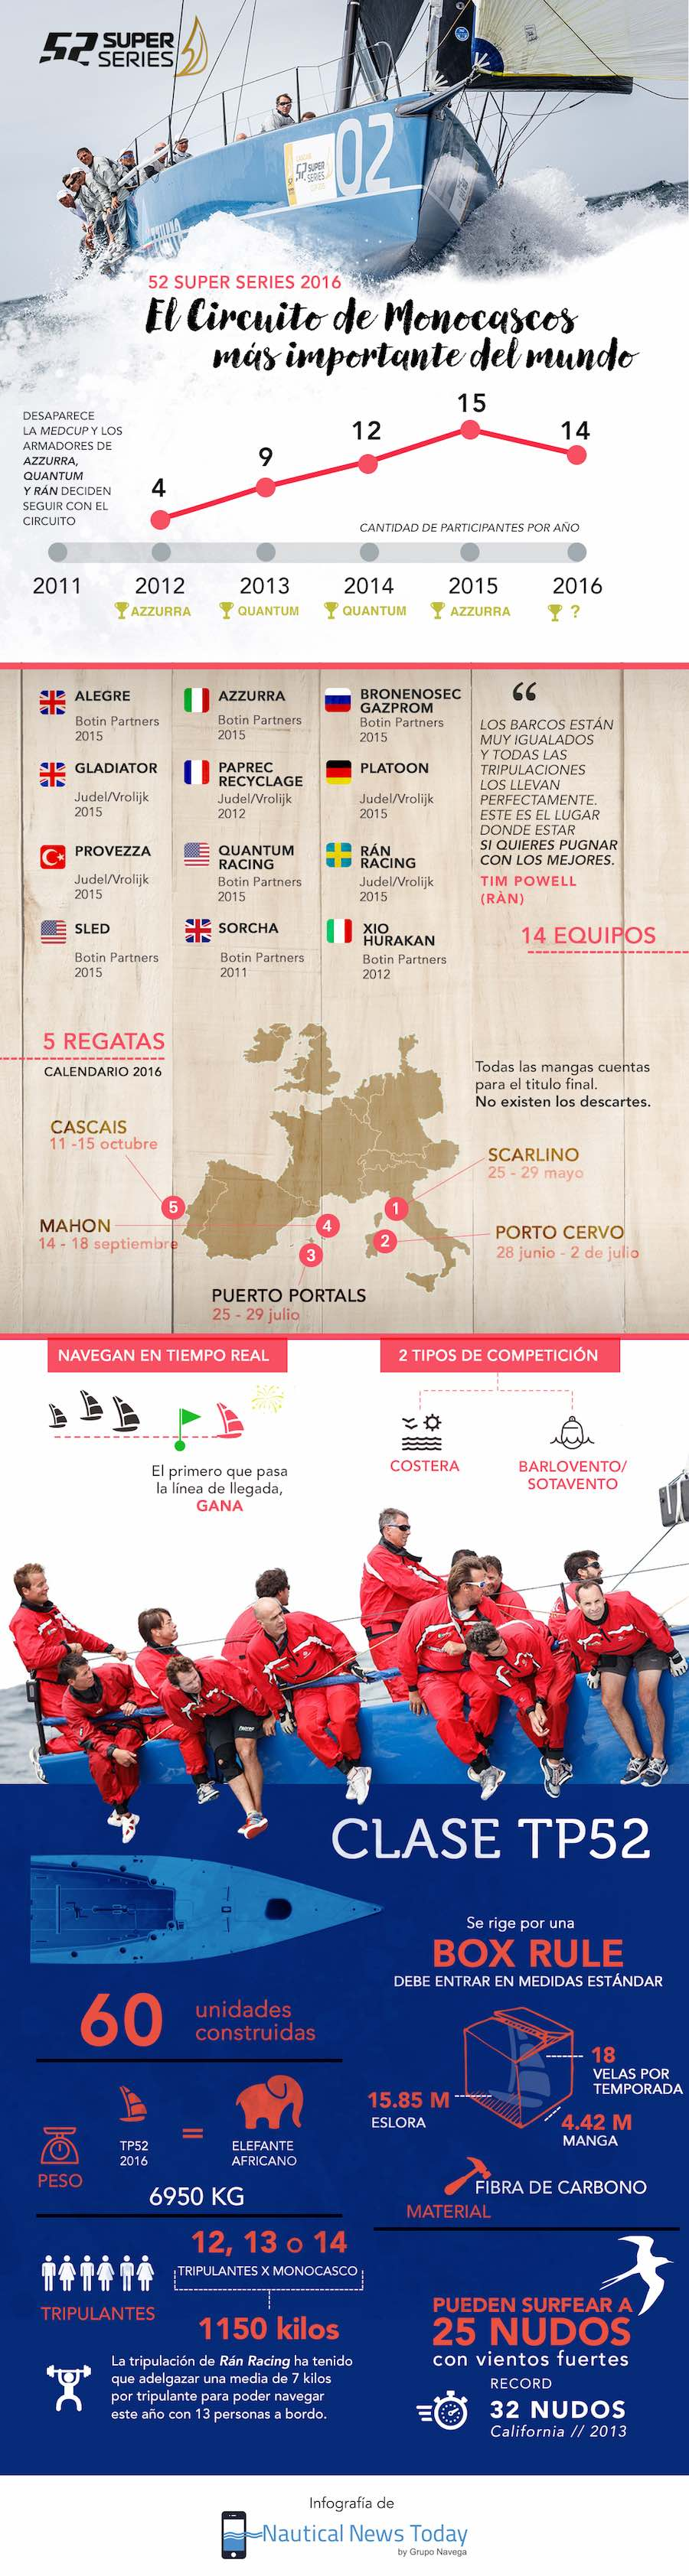 10. Infografia 52 Super Series 2016 P